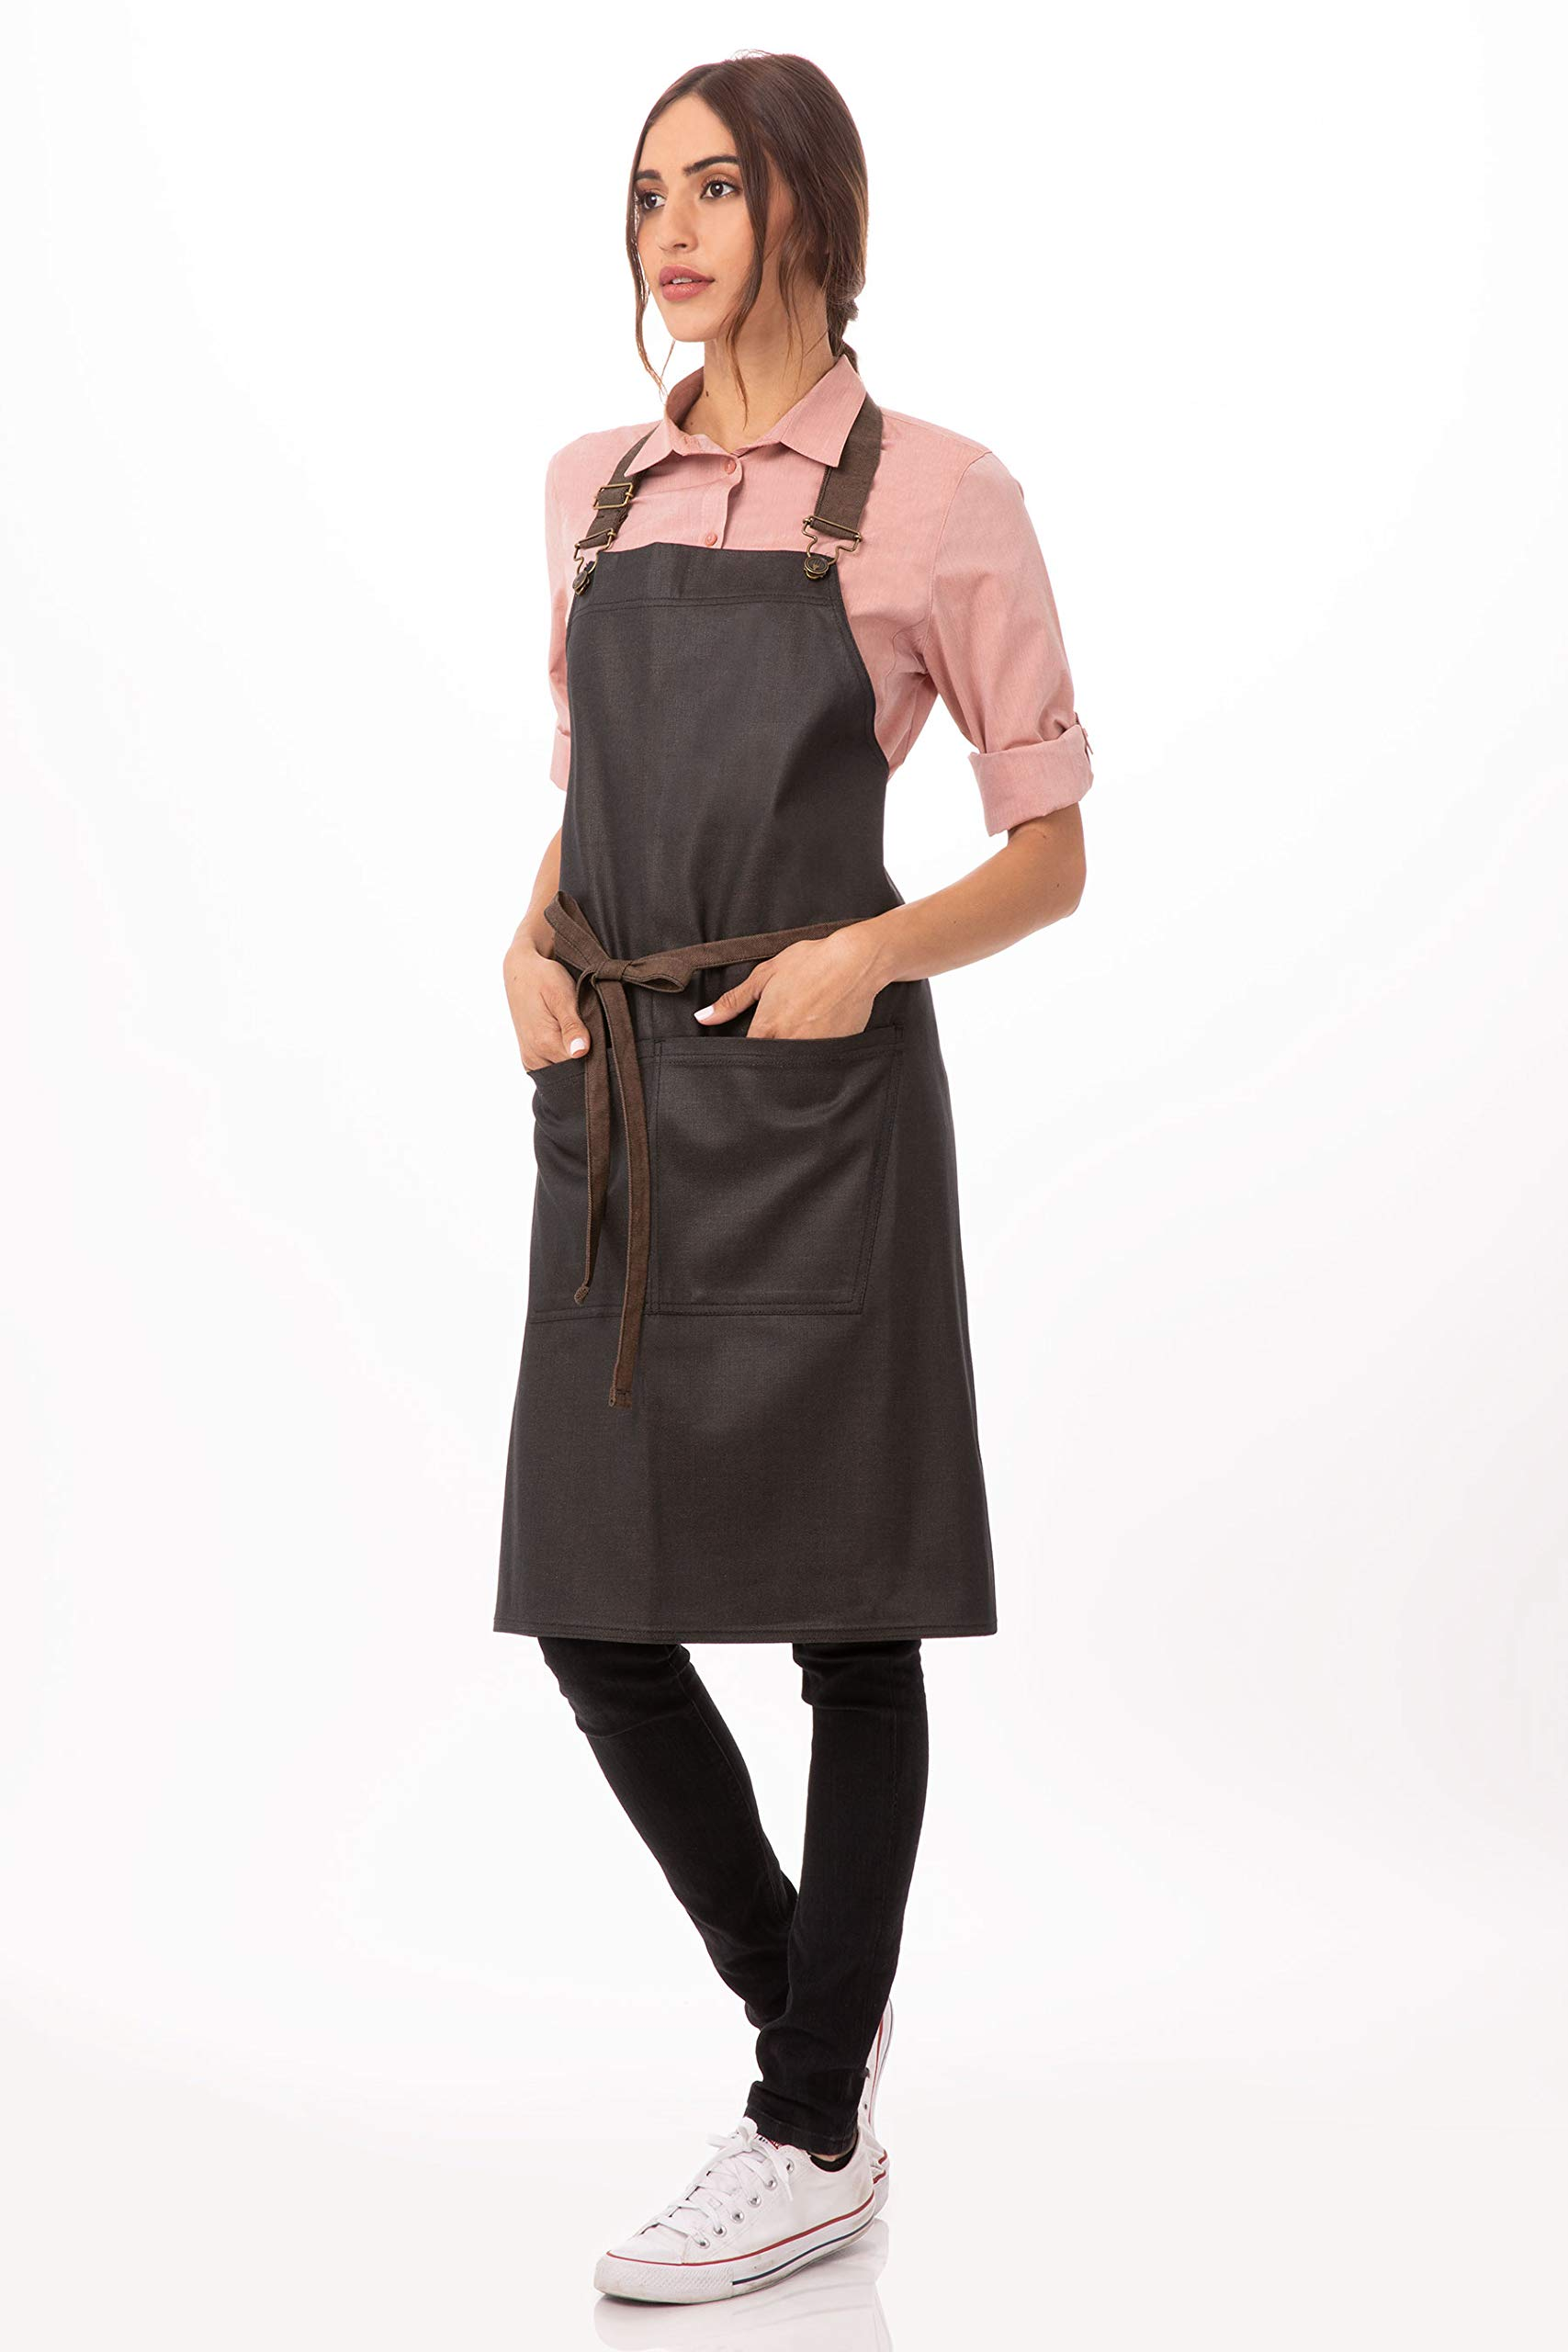 Chef Works Unisex Boulder Bib Apron, Brown/Black, One Size by Chef Works